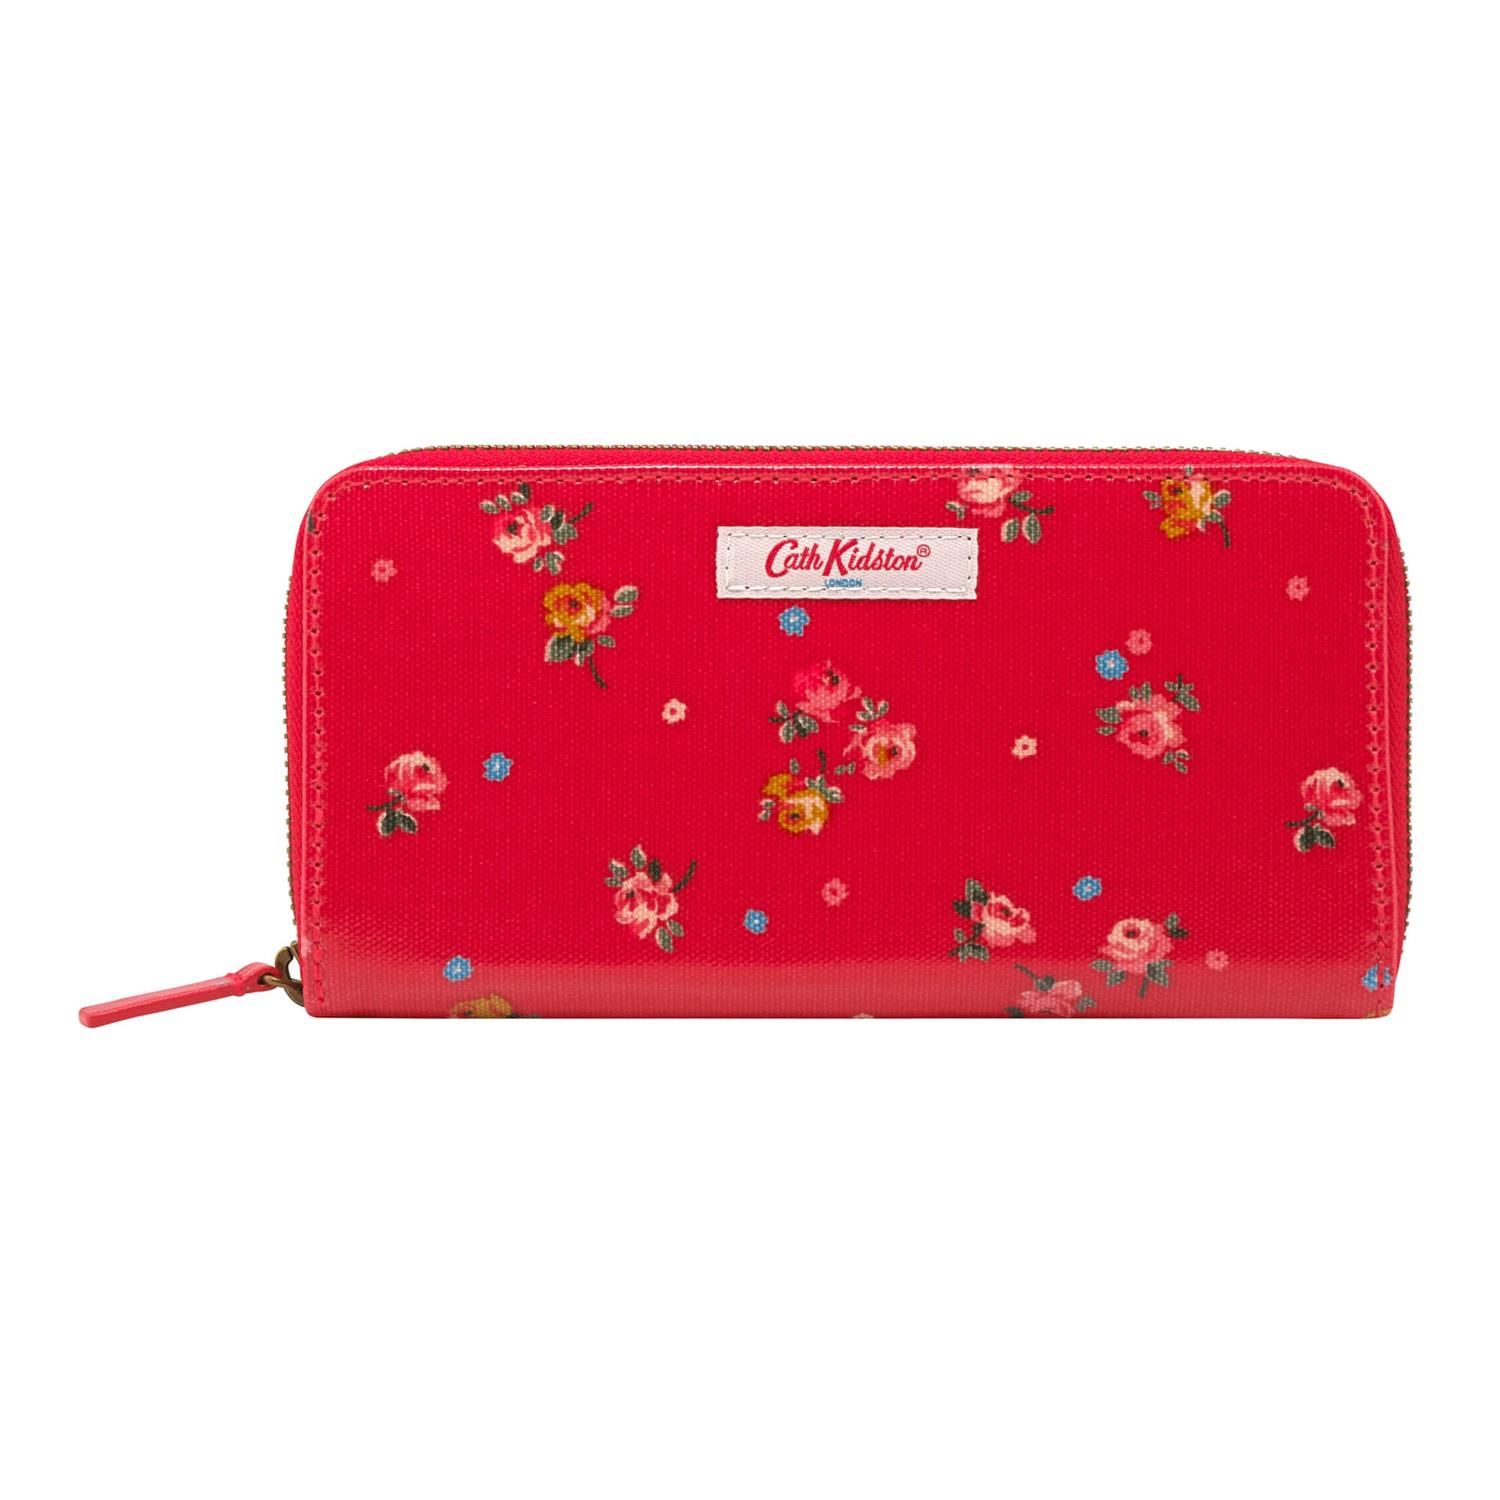 Image of Cath Kidston Continental Zip Wallet, Red/pink